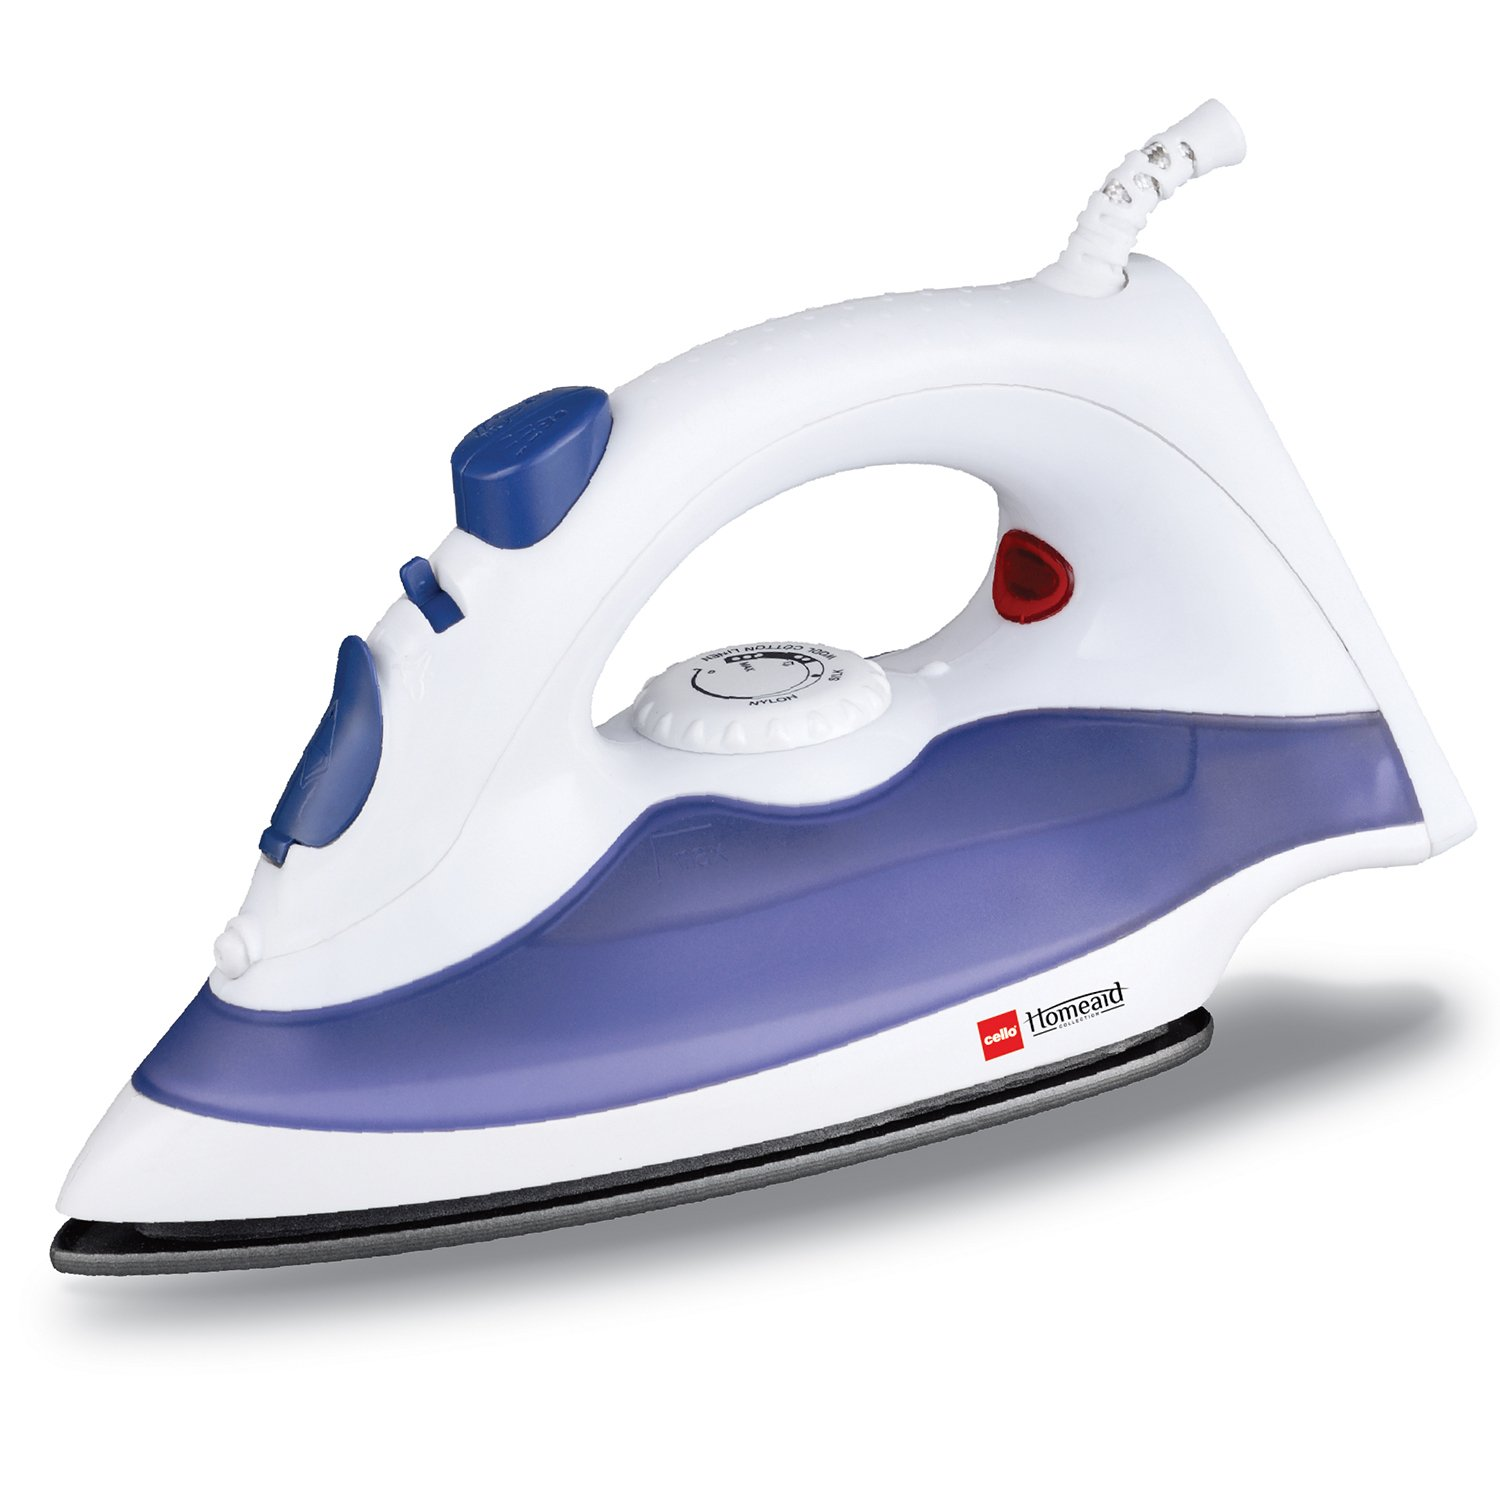 cello sty steam iron